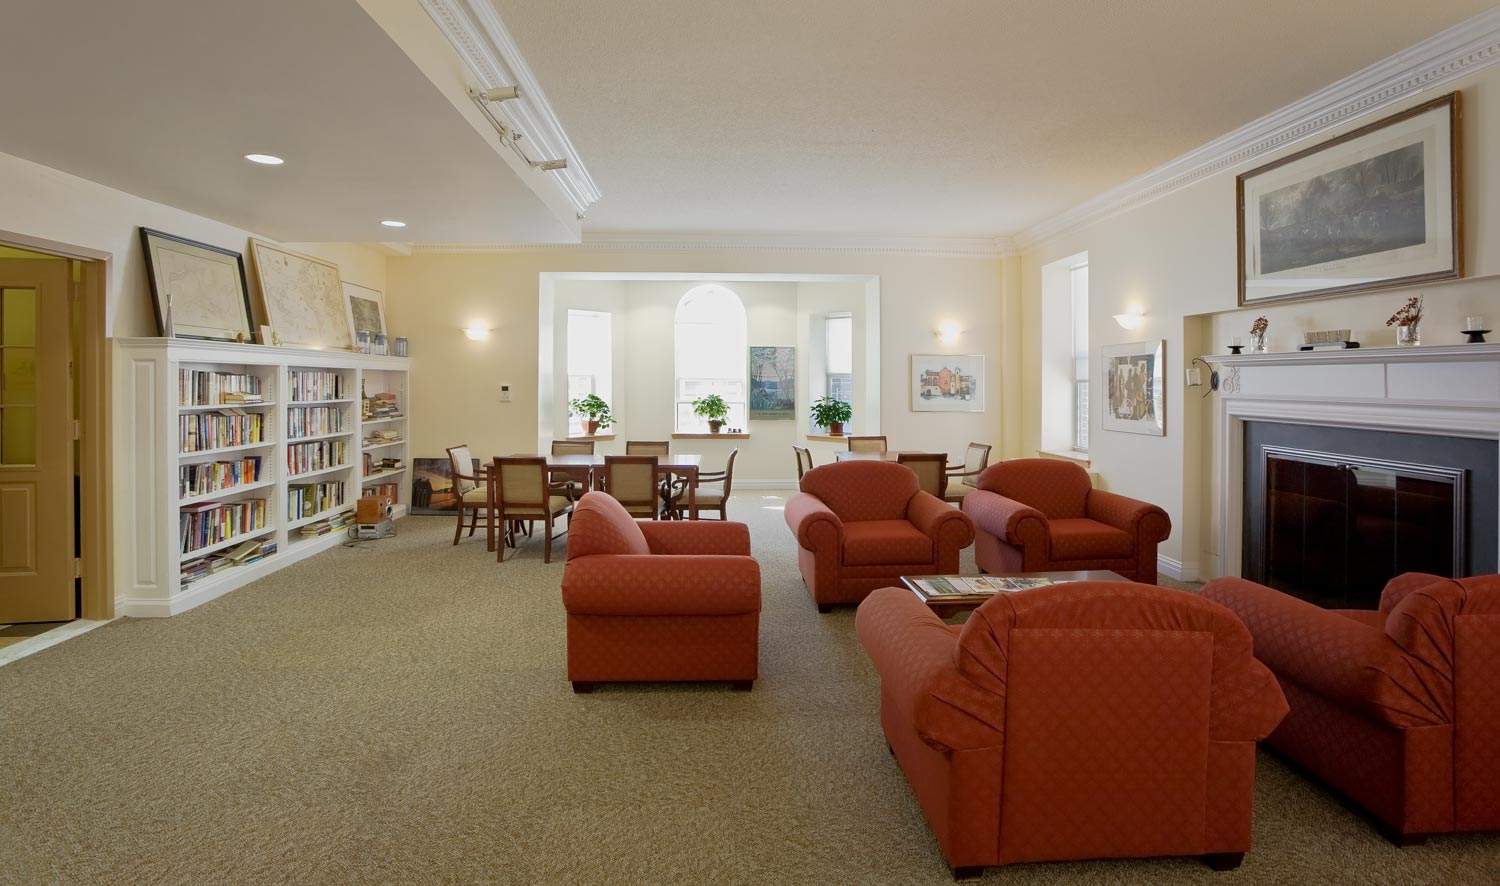 Tenant amenities at Serviam Gardens include a library with reading rooms and computer station.